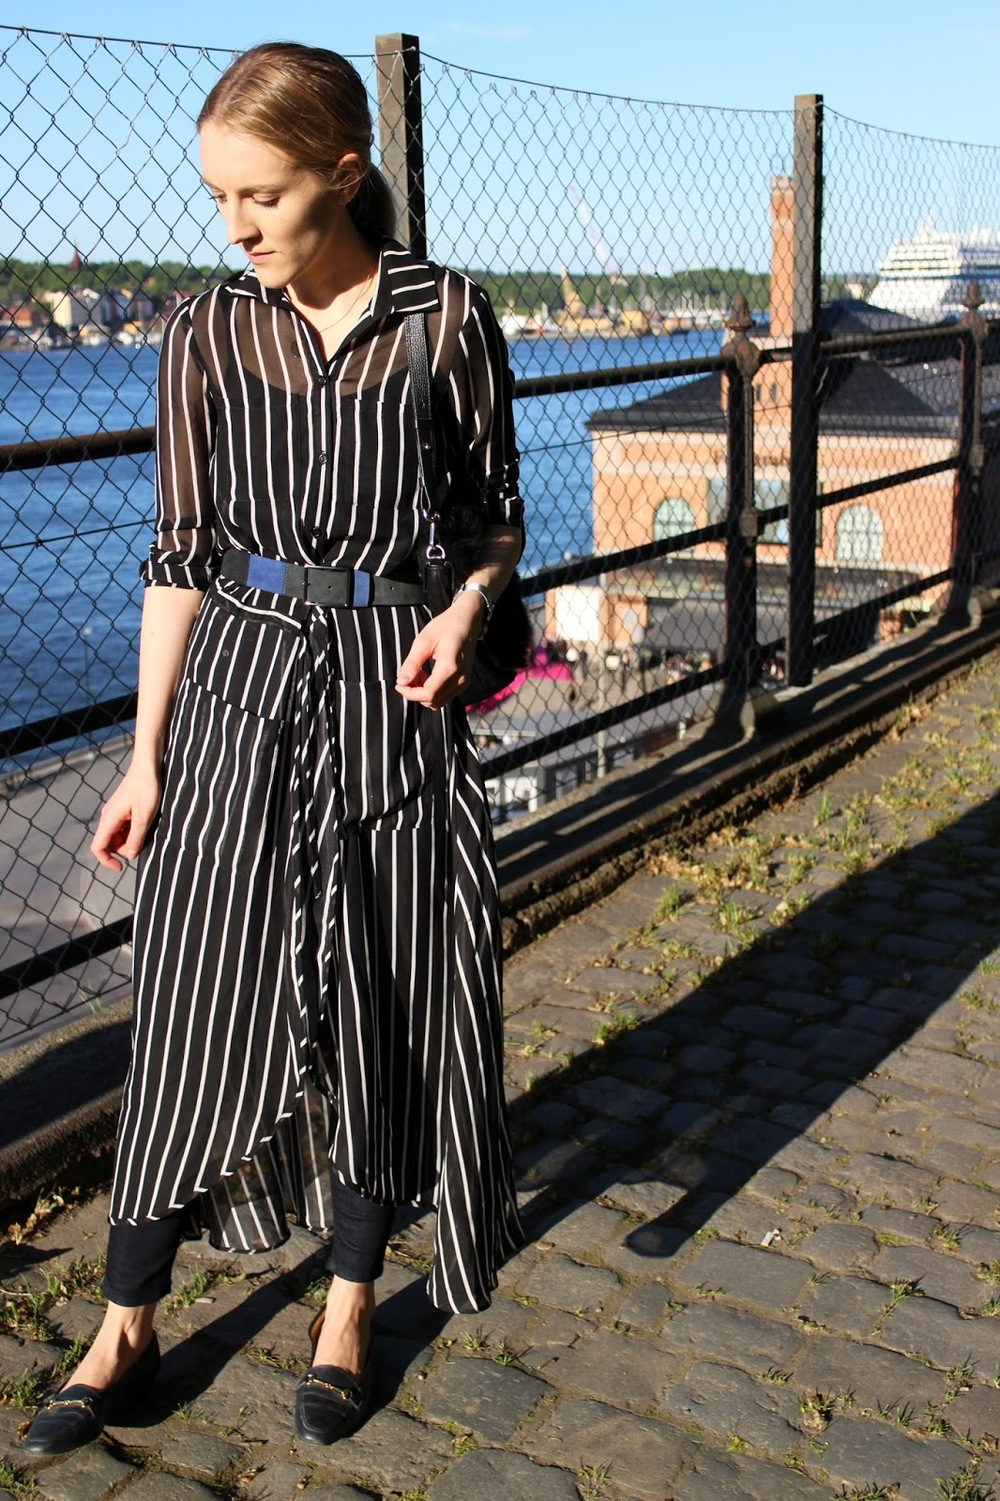 Beatrice Trodden in Acne jeans and Asos shirtdress